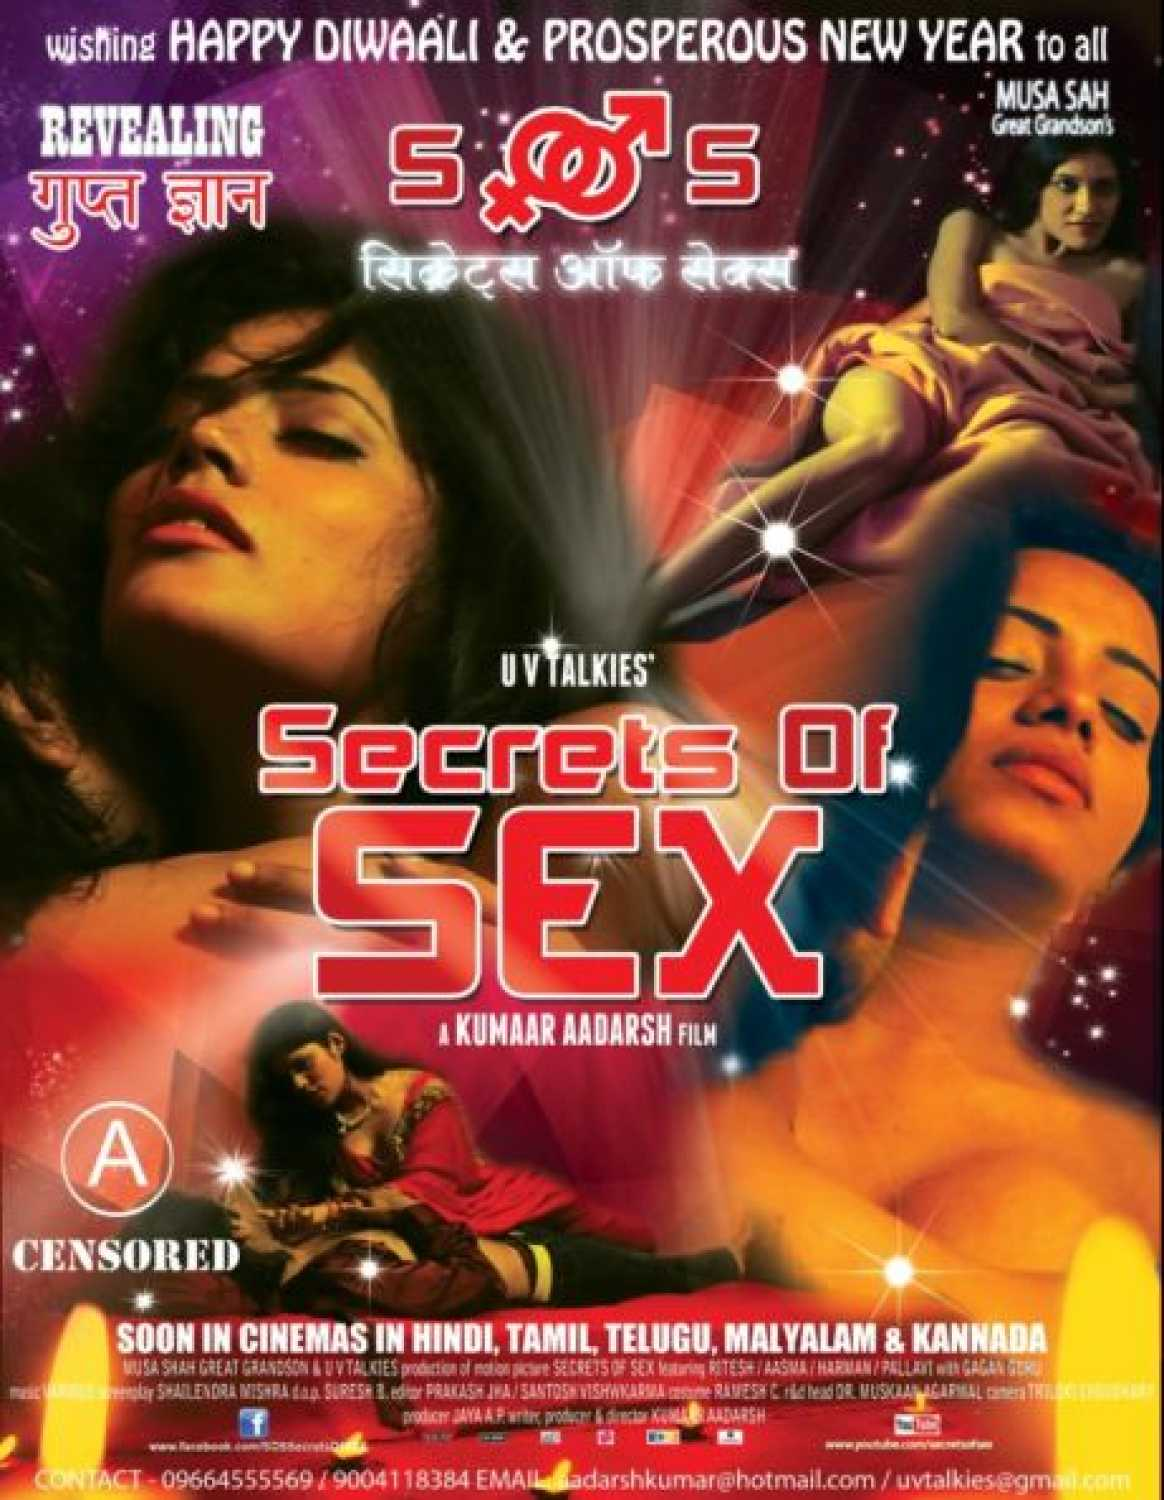 Masturbation hindi nude movie sex psp tamil